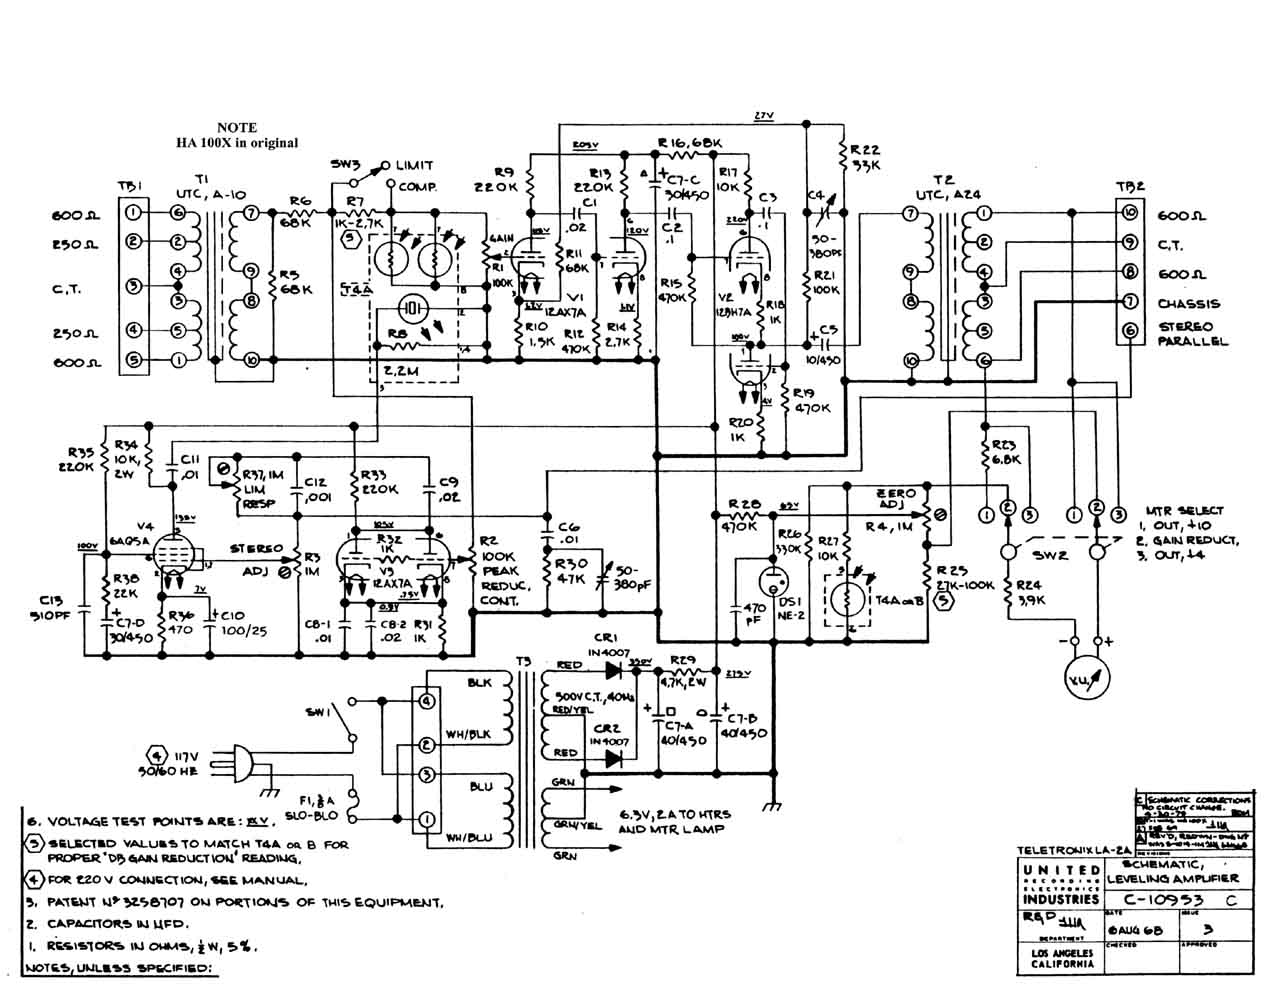 Sowter Vintage Audio Transformers Fac Compressor Wiring Diagram 150